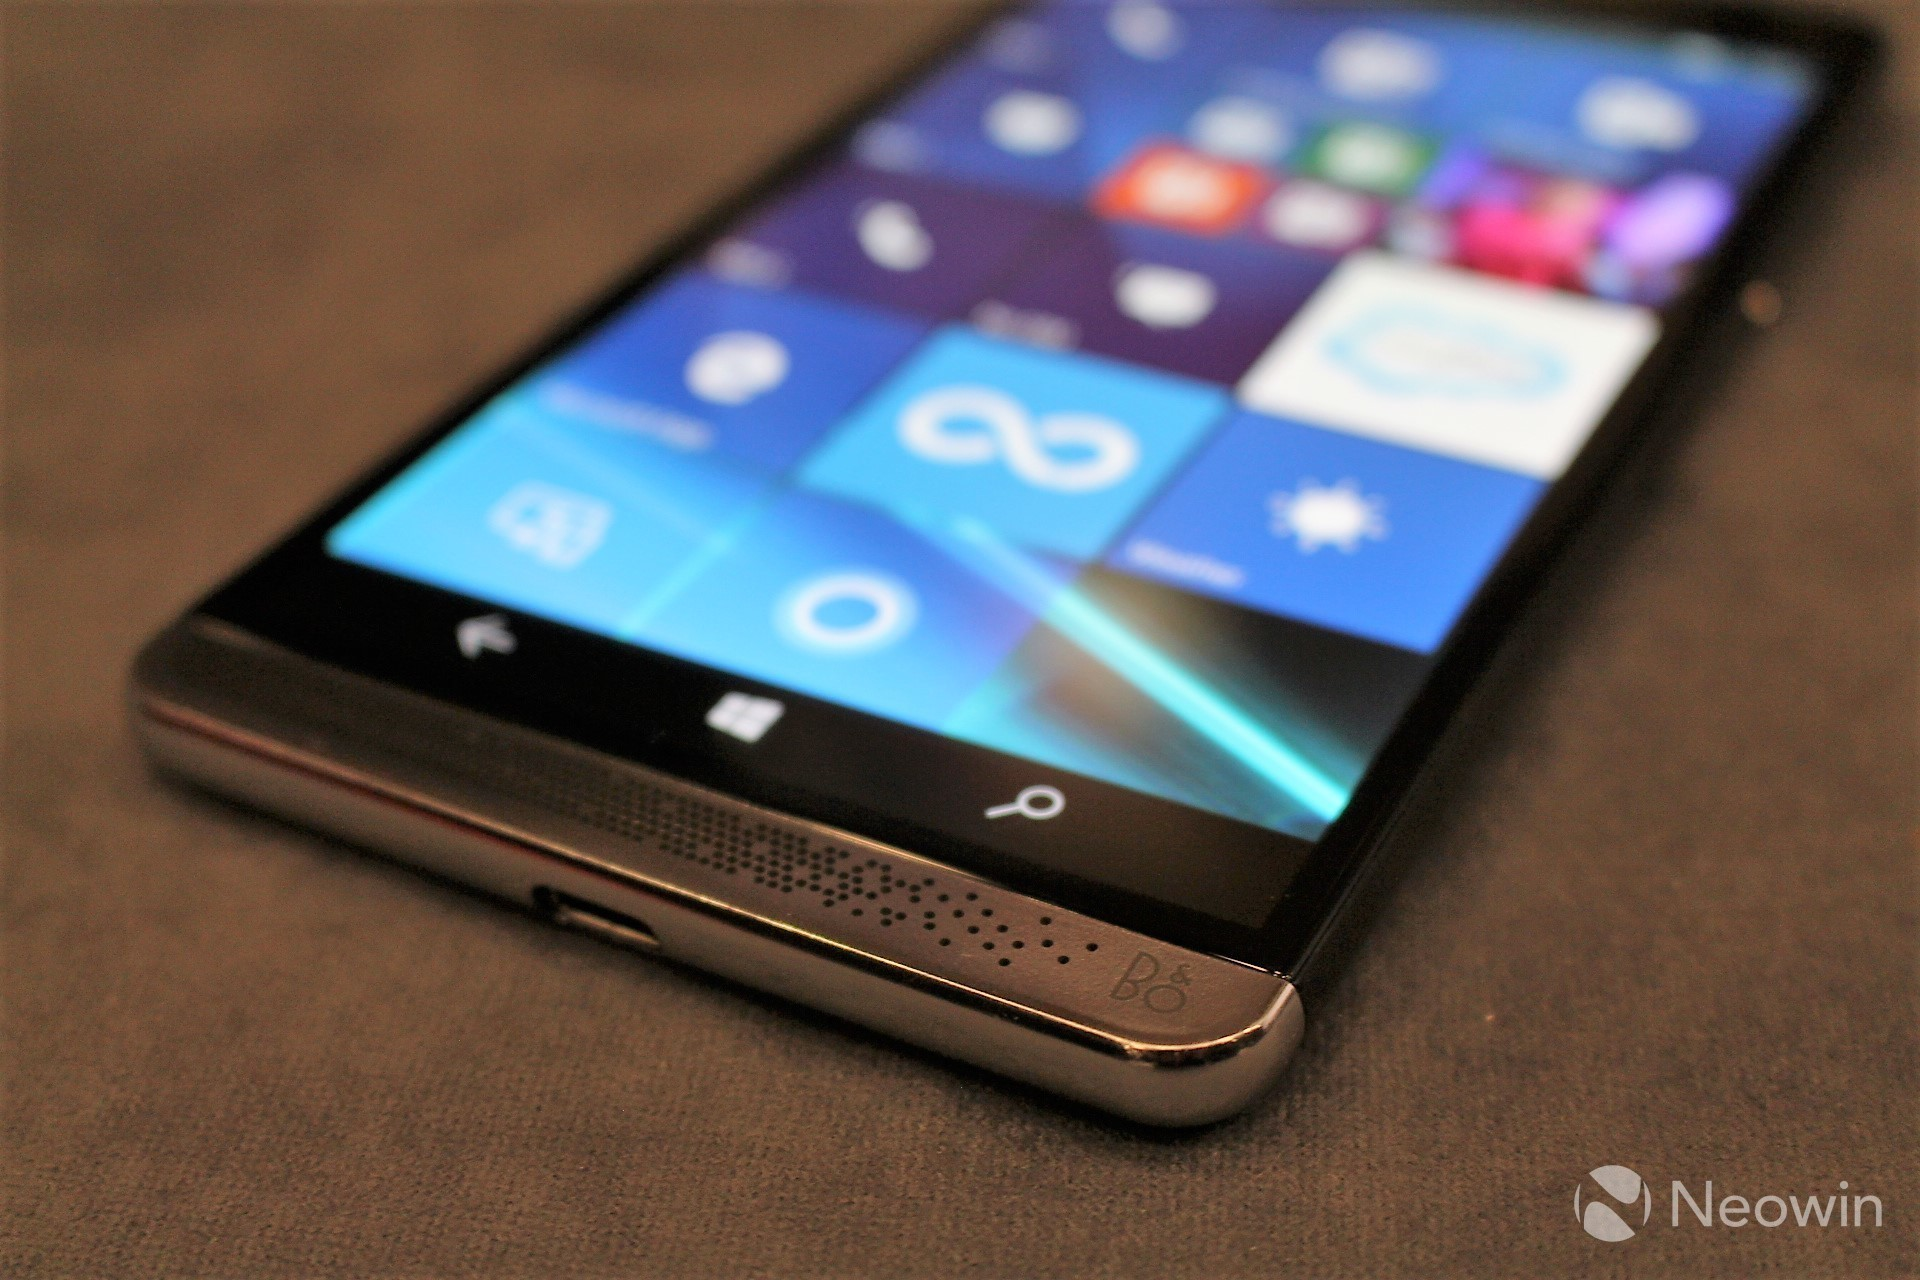 HP Elite x3 gets a mobile barcode scanner accessory - Neowin